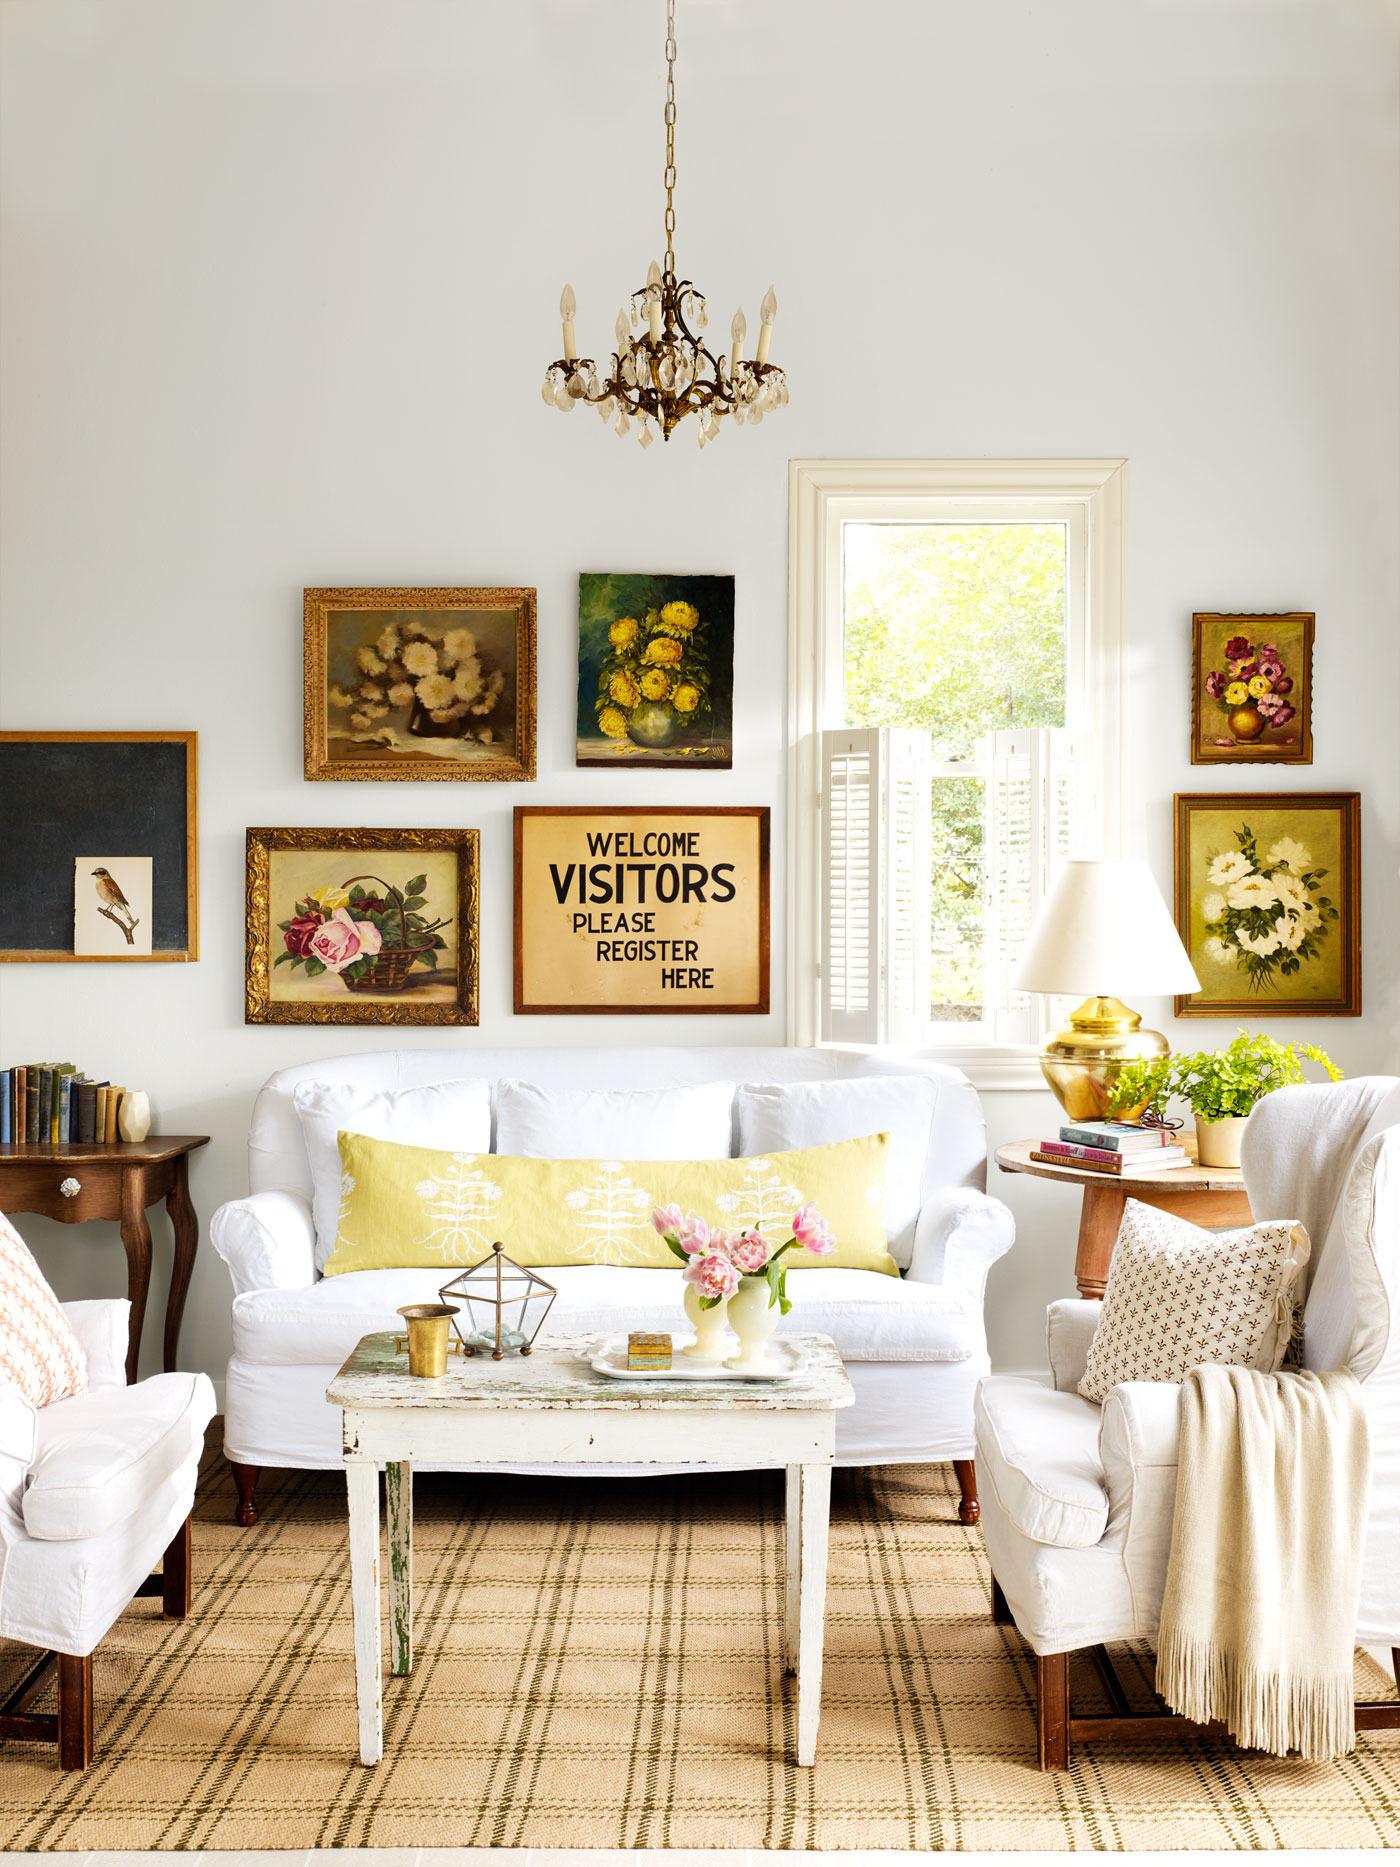 Modern country living room decorating ideas - Modern Country Living Room Decorating Ideas